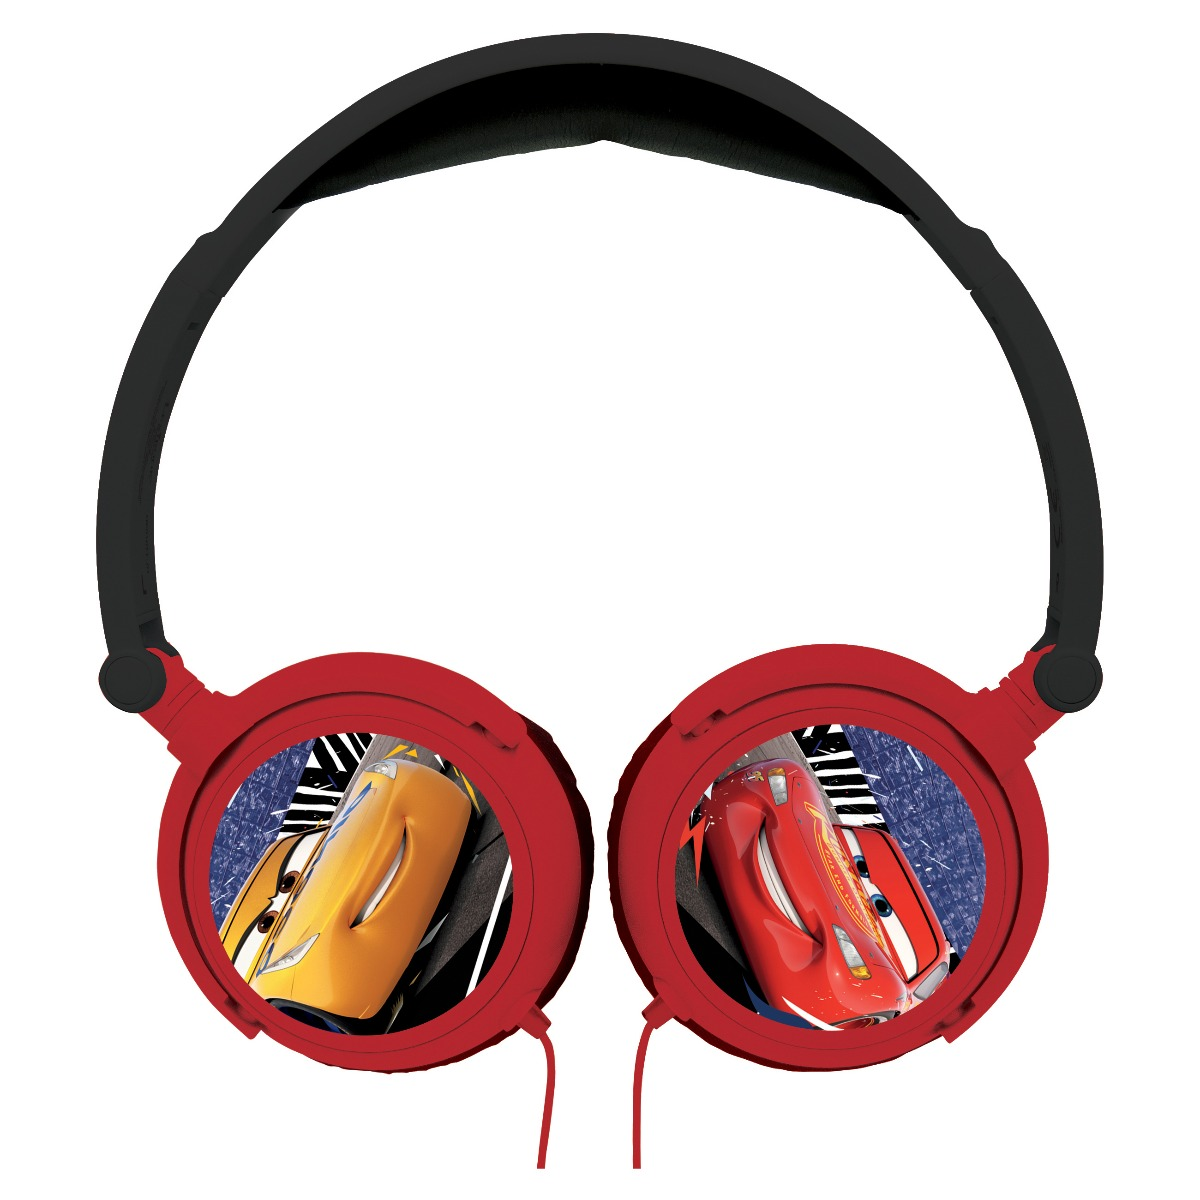 Casti audio cu fir pliabile, Disney Cars